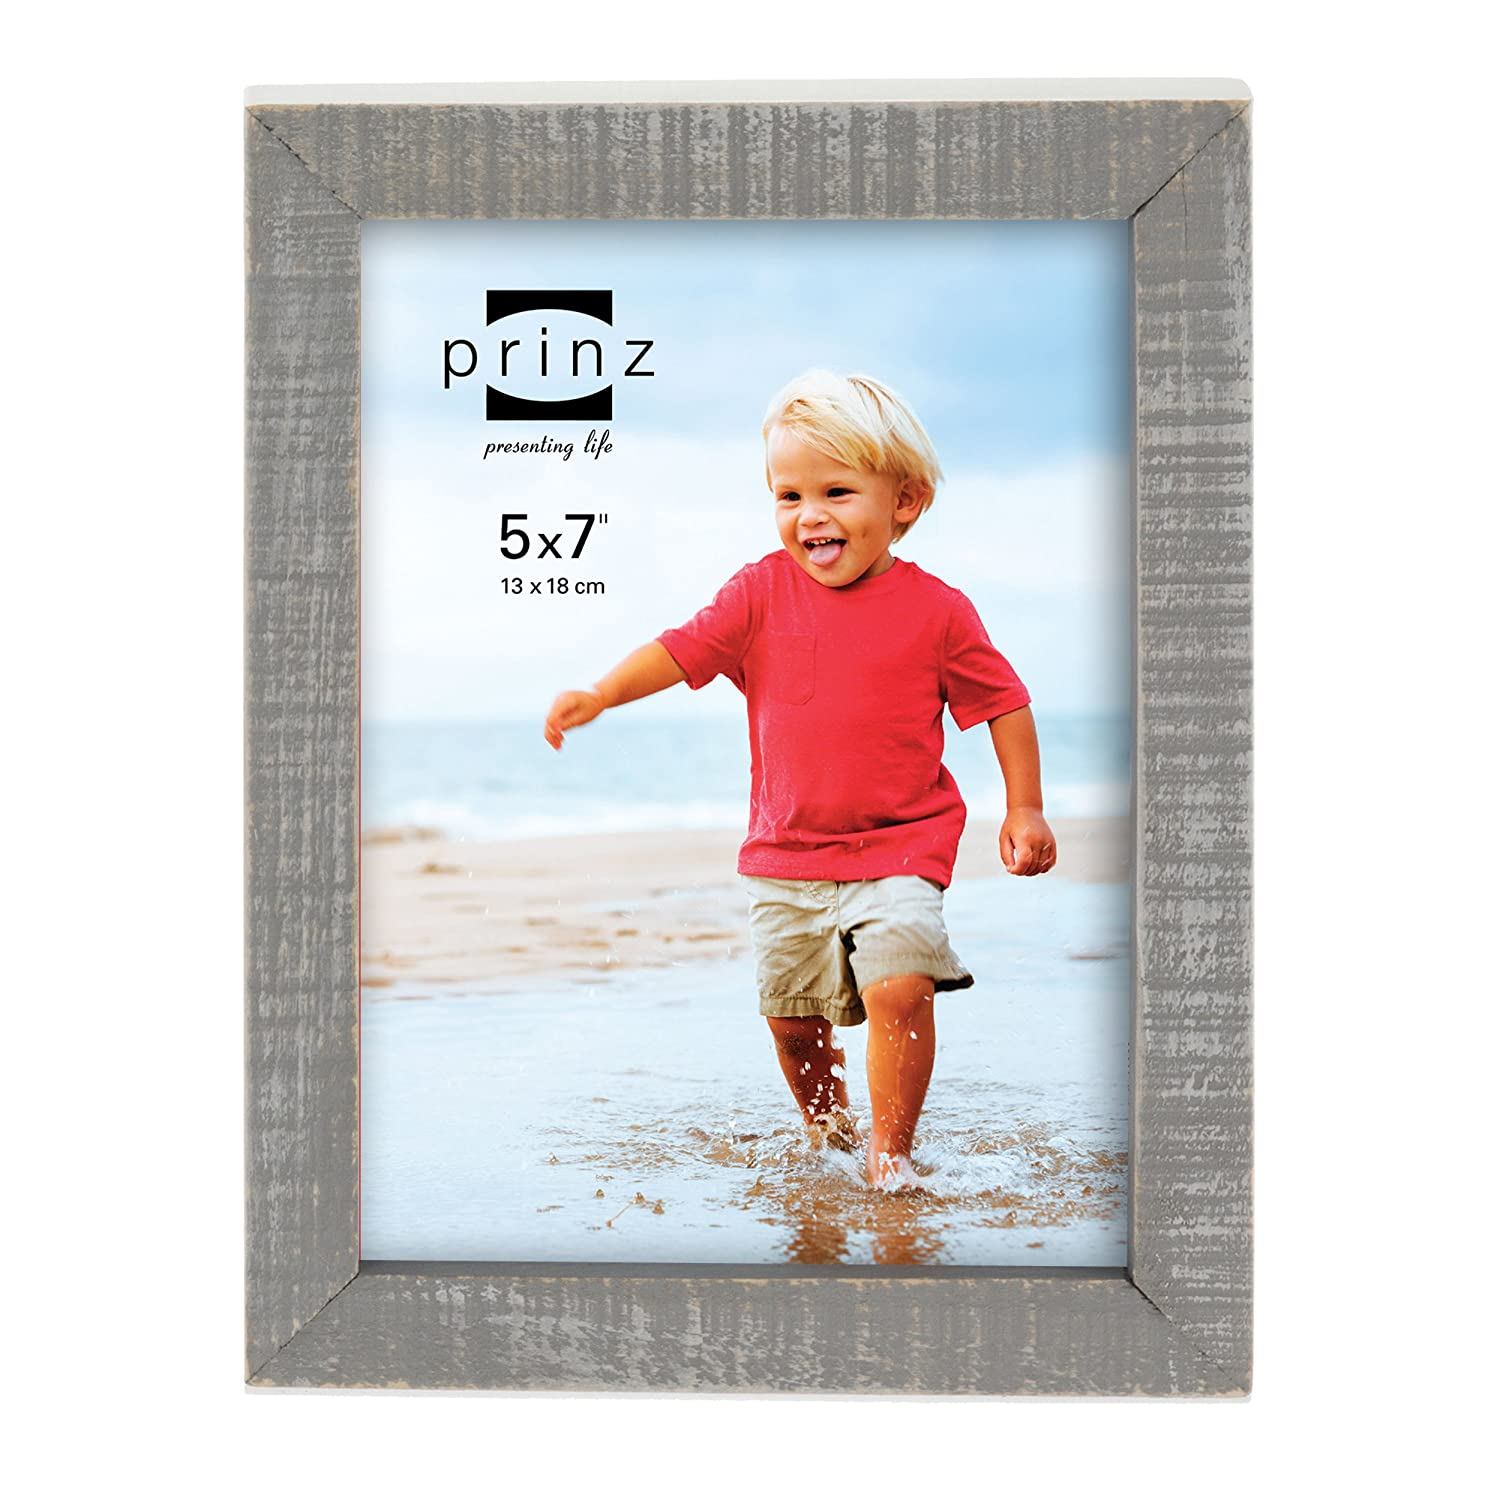 Prinz Inch Frame4 Distressed By 6 Madison Wood Solid m0wyPvN8nO